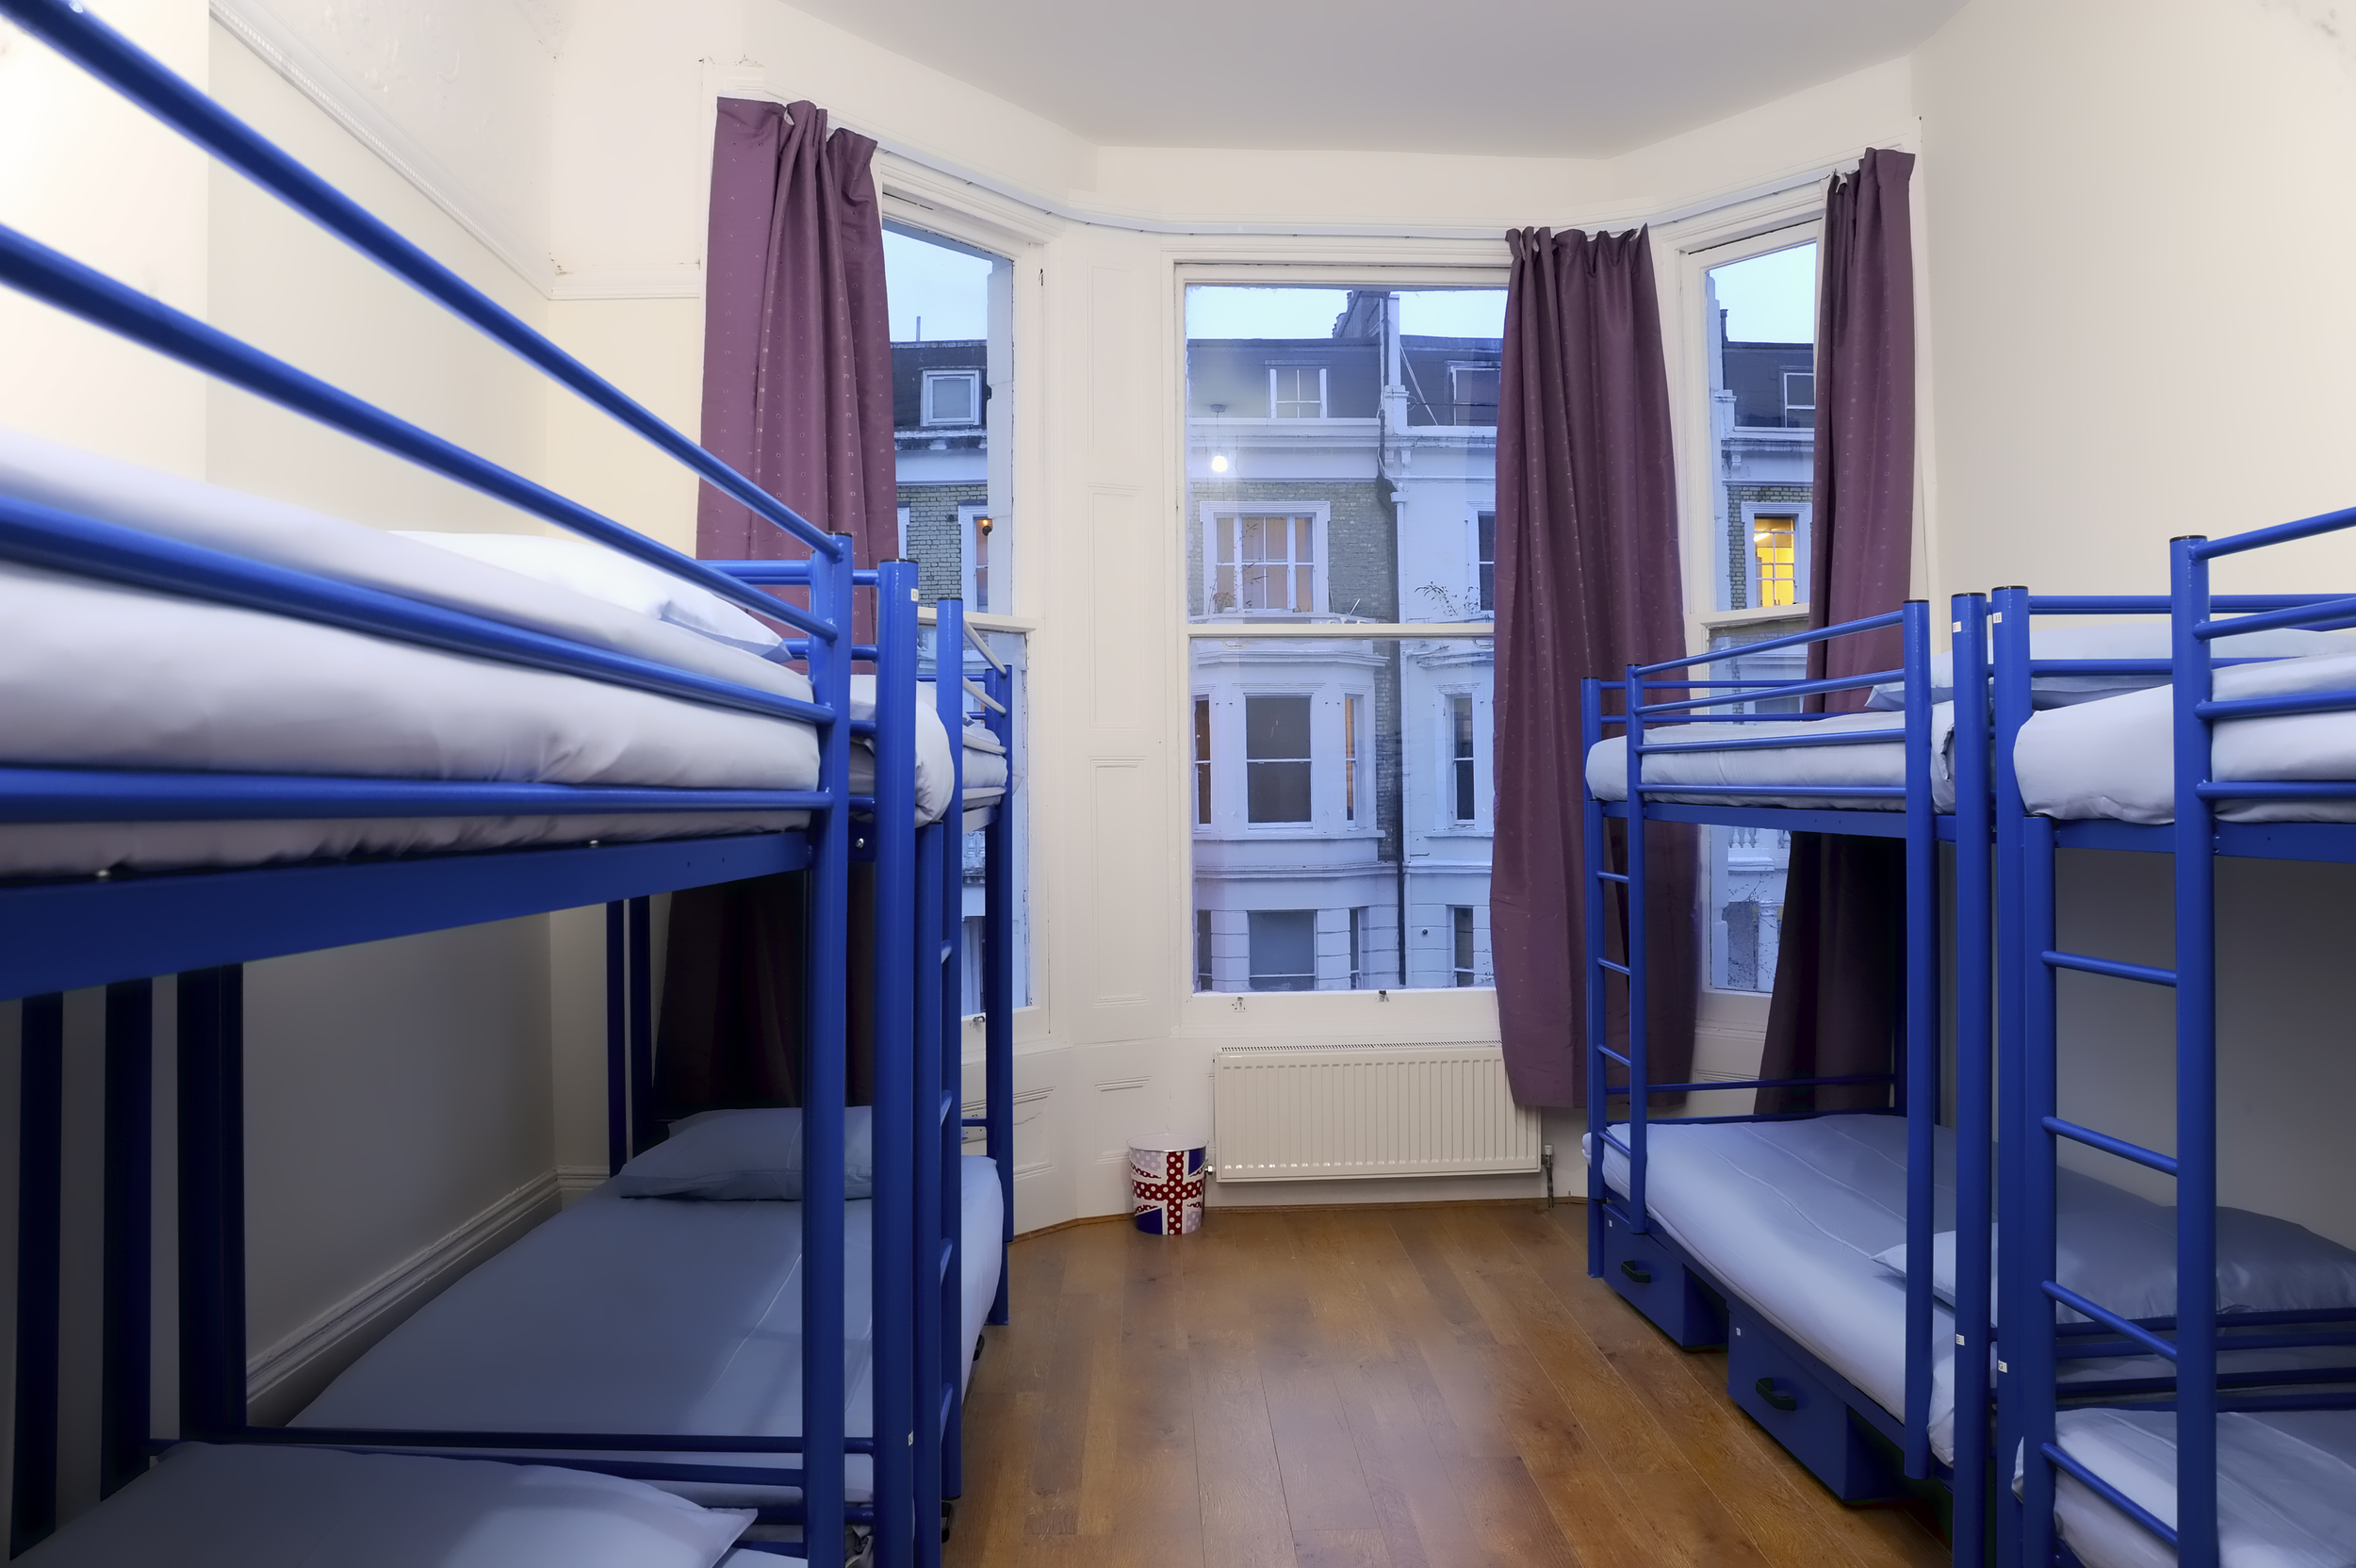 large-london-hostel-dorm-2.jpg